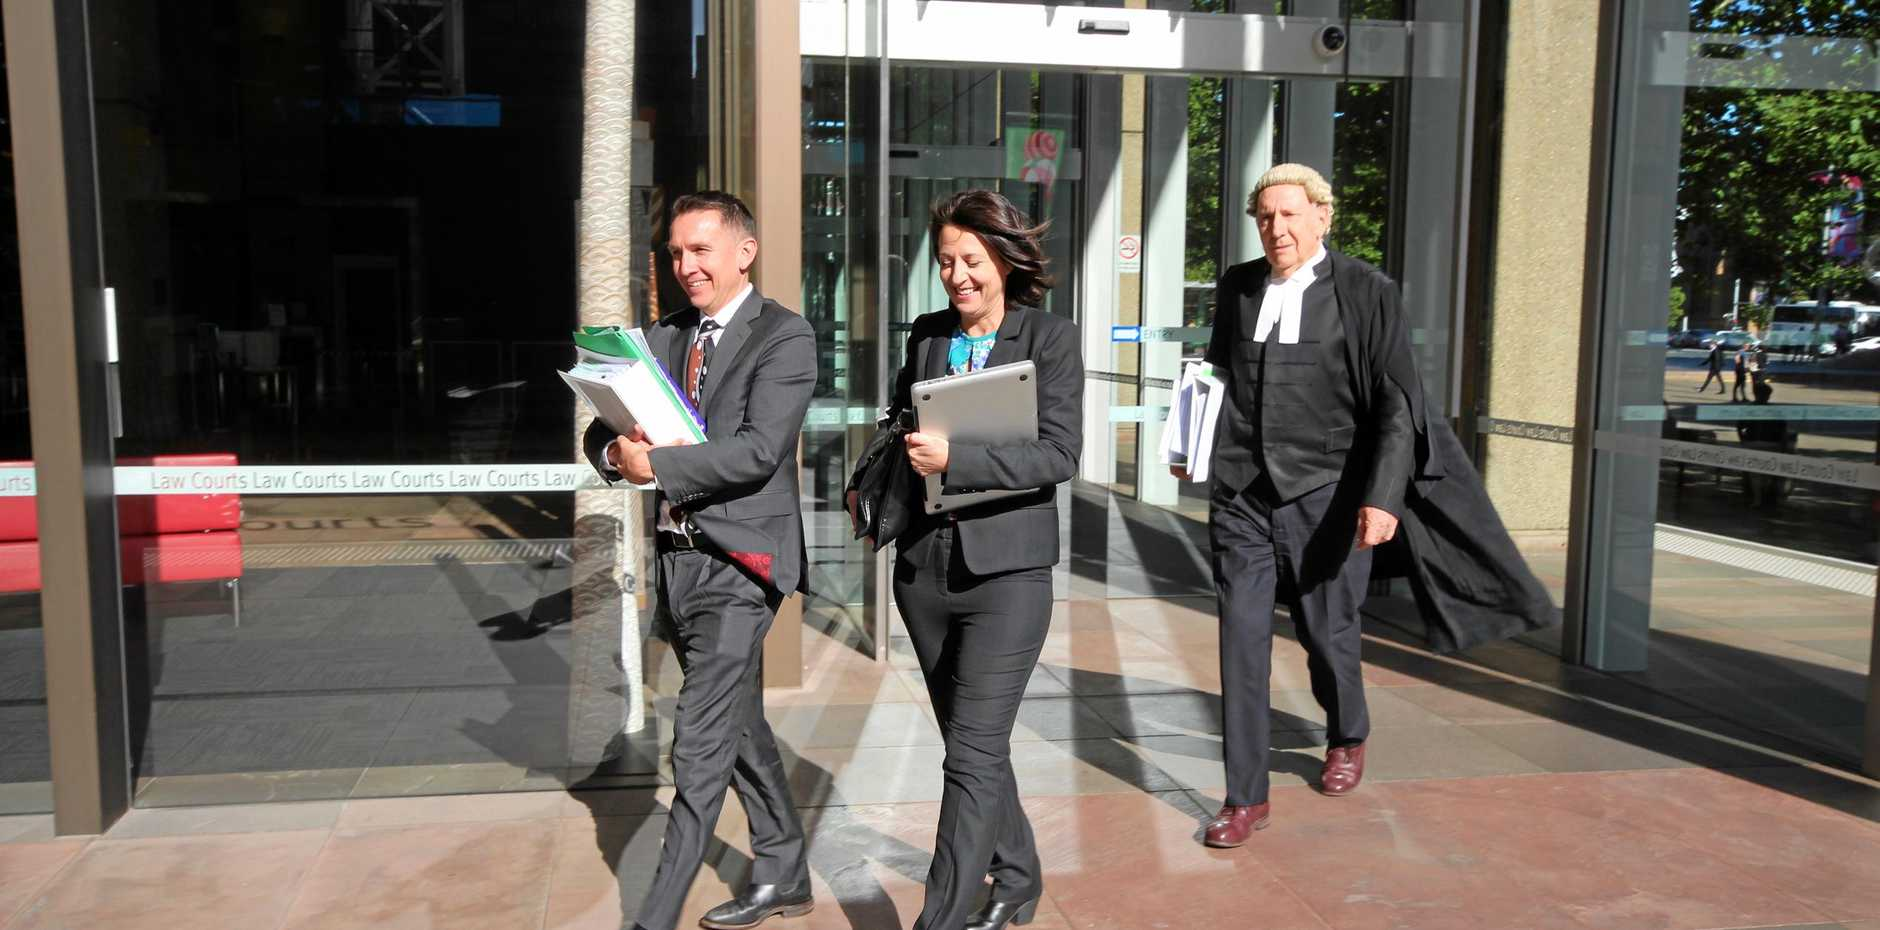 Esther Rockett (centre) leaves Sydney Supreme Court with solicitor Stewart O'Connell and barrister Tom Molomby after the final hearing in the defamation case brought against her by Universal Medicine leader Serge Benhayon in December.